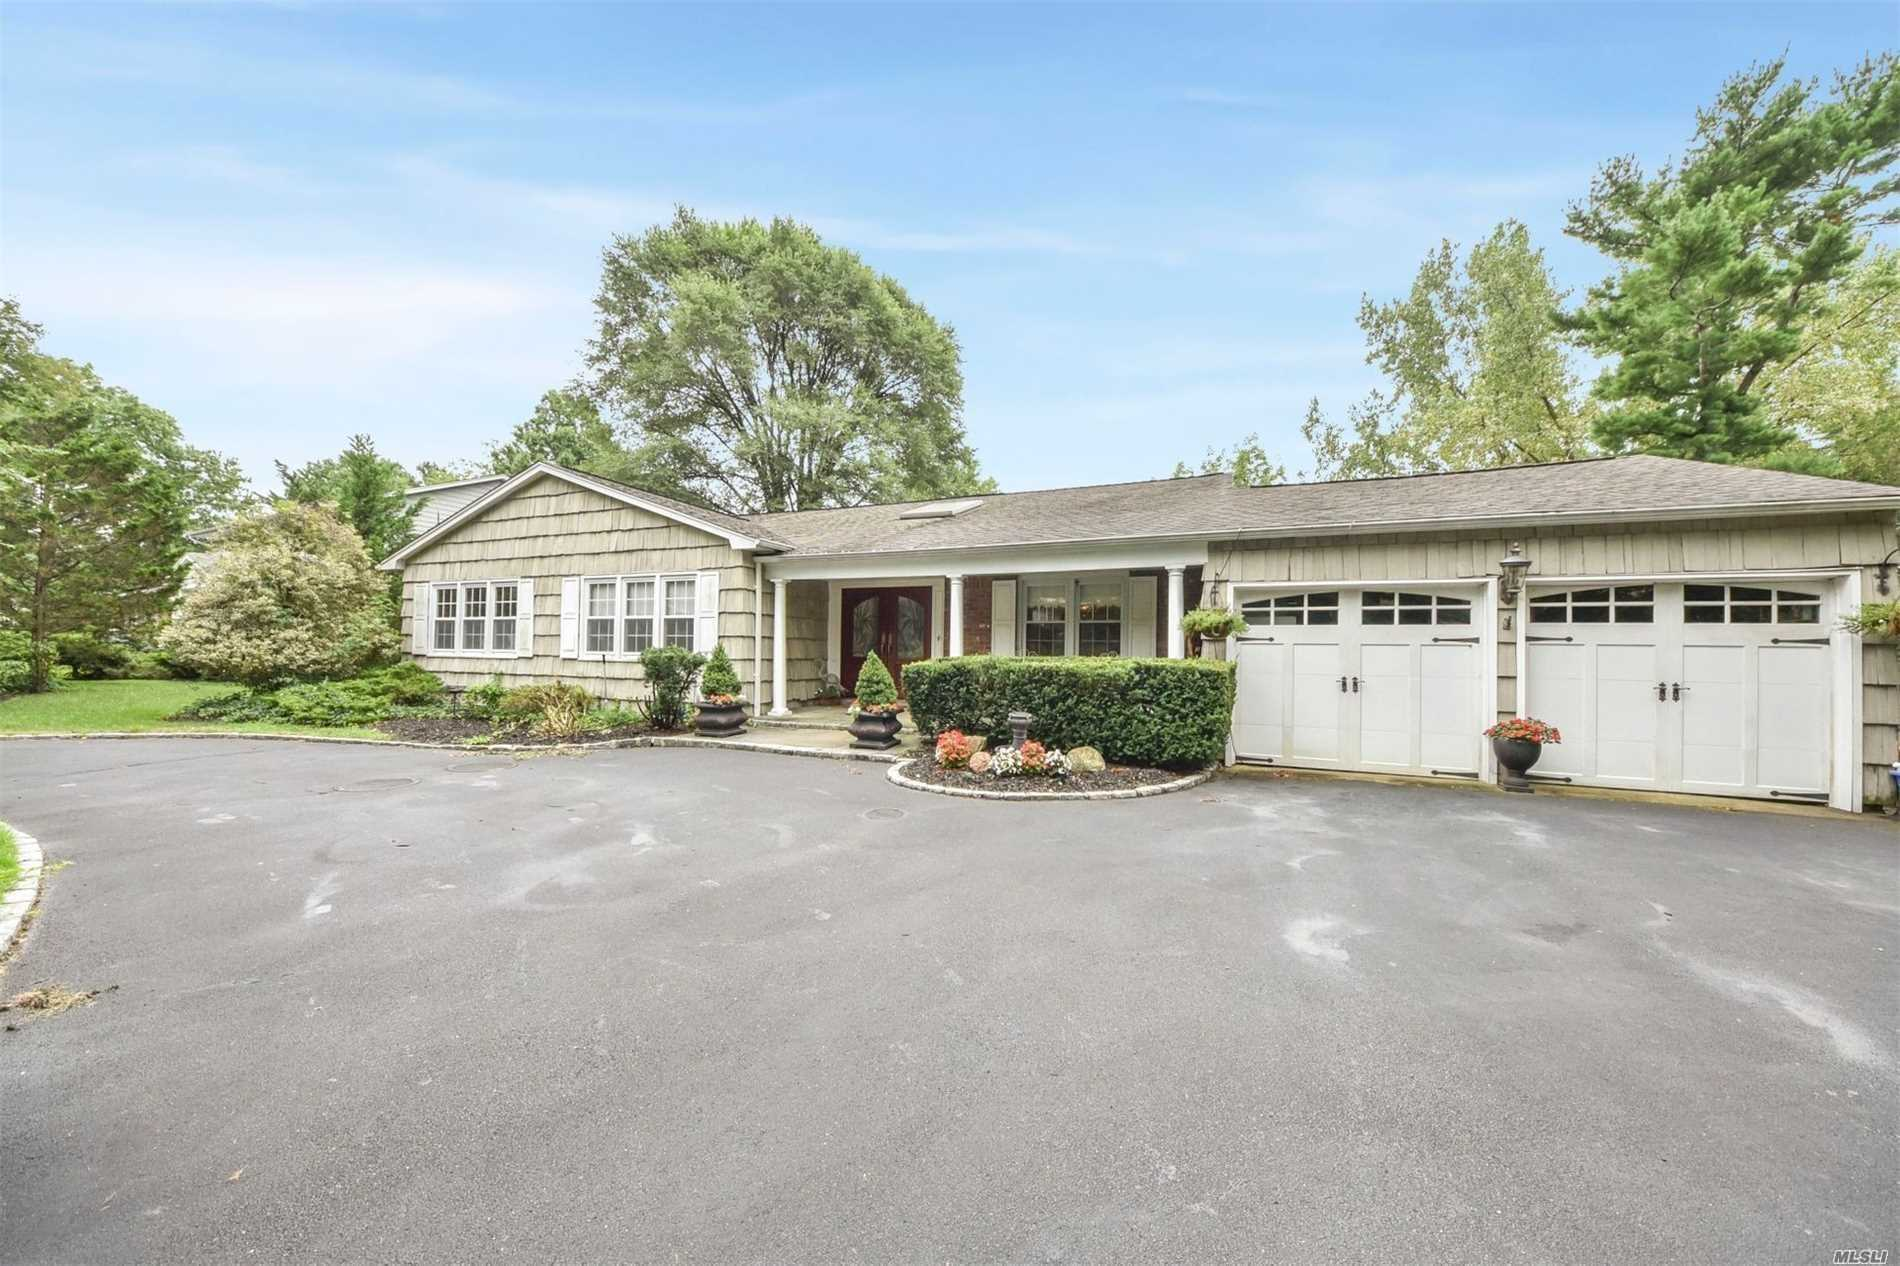 This Sprawling Ranch On A 1/2 Acre Of Land With A Built In Pool. Fire Pits, And Marble Bathrooms Is Perfection. The Kitchen Has Been Upgraded. Located In The Most Prestigious Neighborhood In Roslyn Harbor. 2 Car Garage, Wrap Around Drive-Way, Includes A Fully Finished Basement. The School District Is Second To None. This Is An Opportunity To Live In One F The Most Finest Neighborhoods That Long Island Has To Offer, With Park Like Grounds.